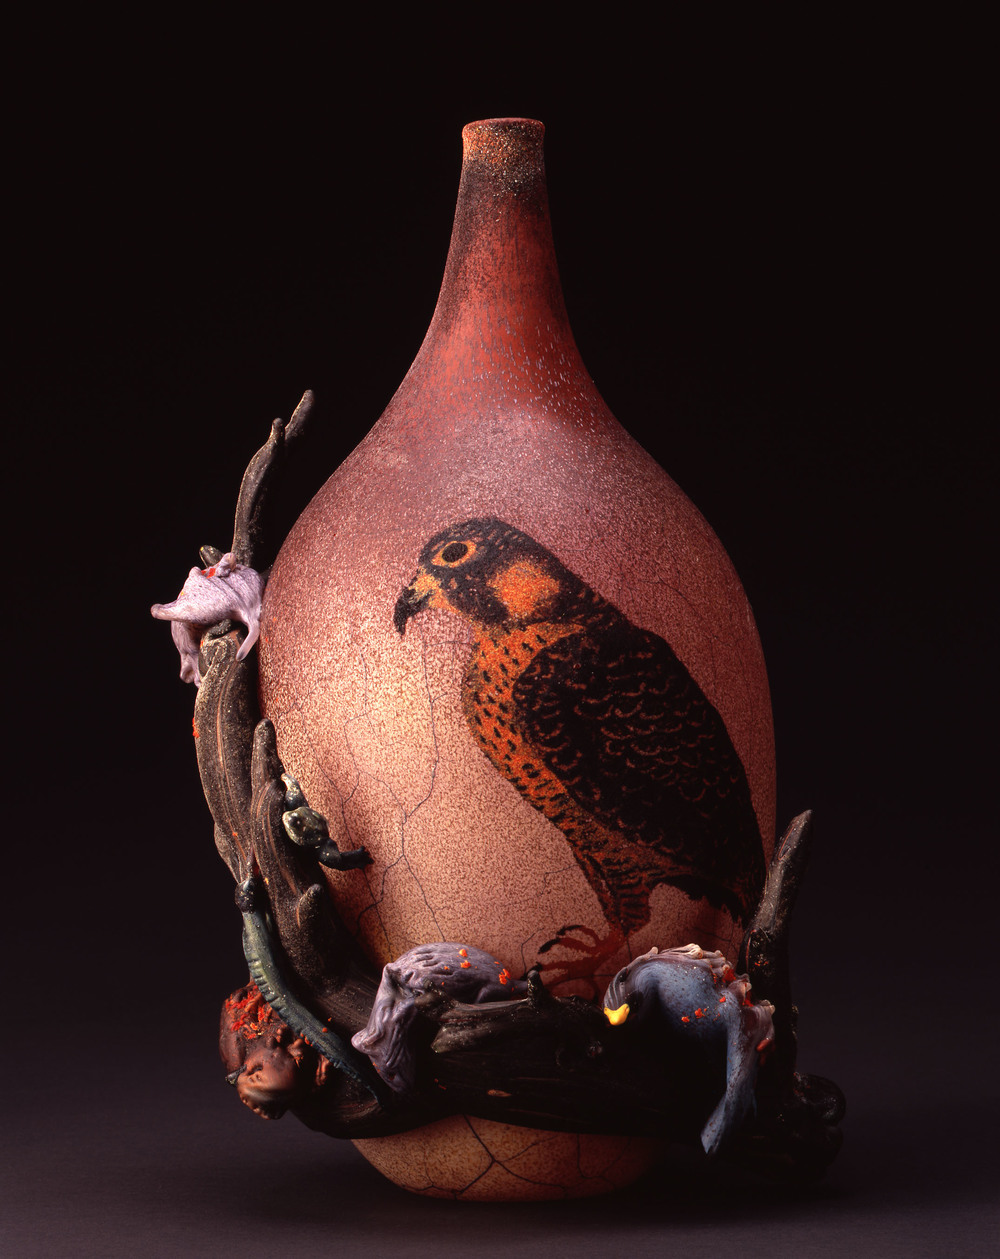 William Morris,  Vessel with Bird of Prey and Carrion,  (2004, glass, 15 3/16 x 9 3/4 x 9 3/4 inches), WM.40